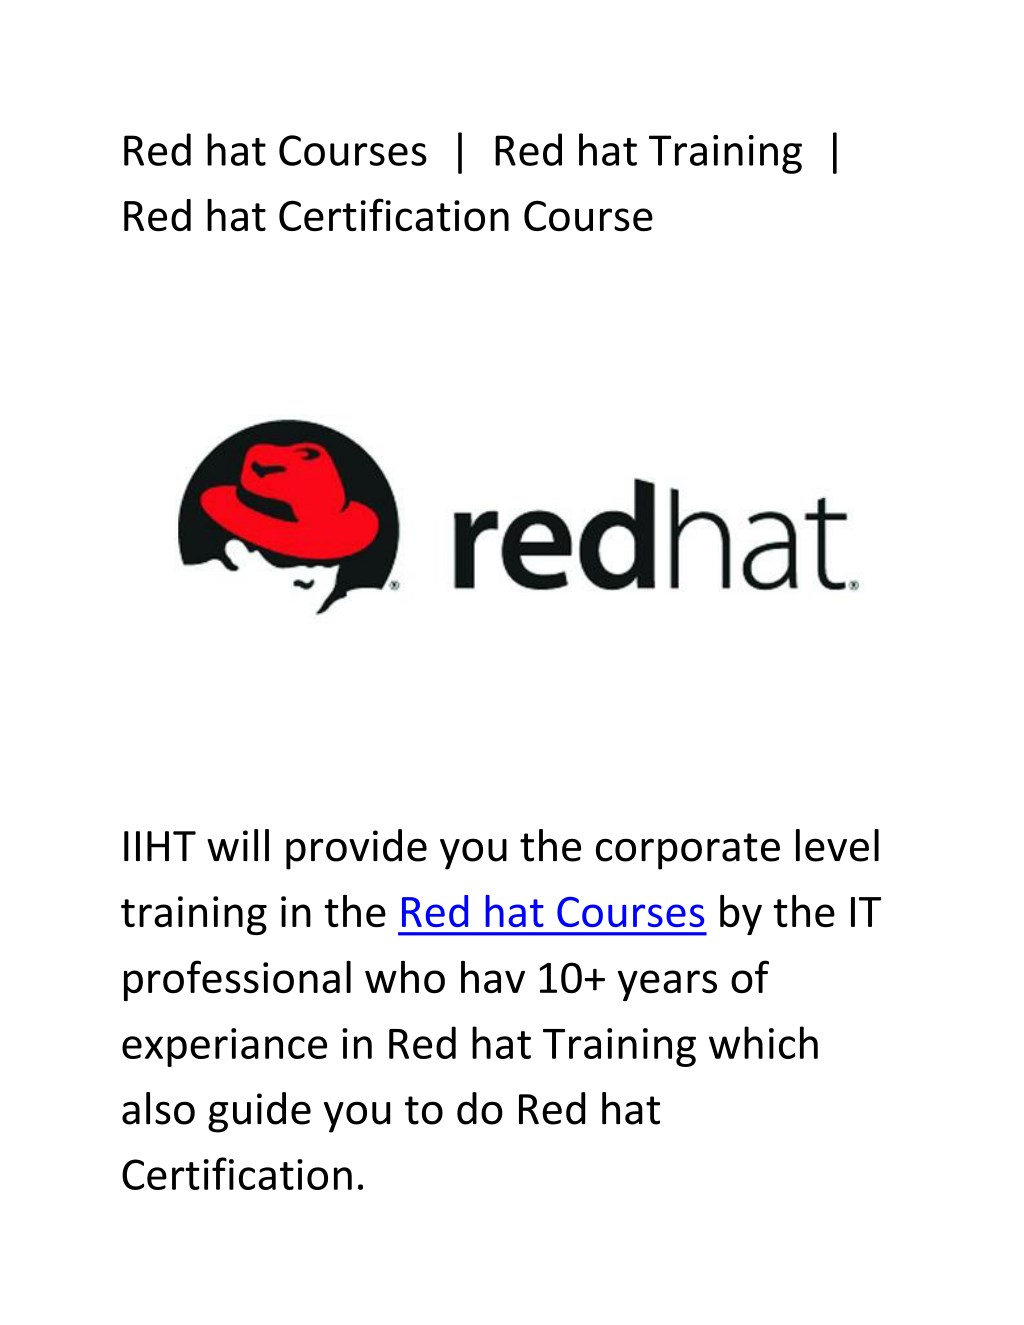 Ppt Red Hat Certification Course Red Hat Courses Red Hat